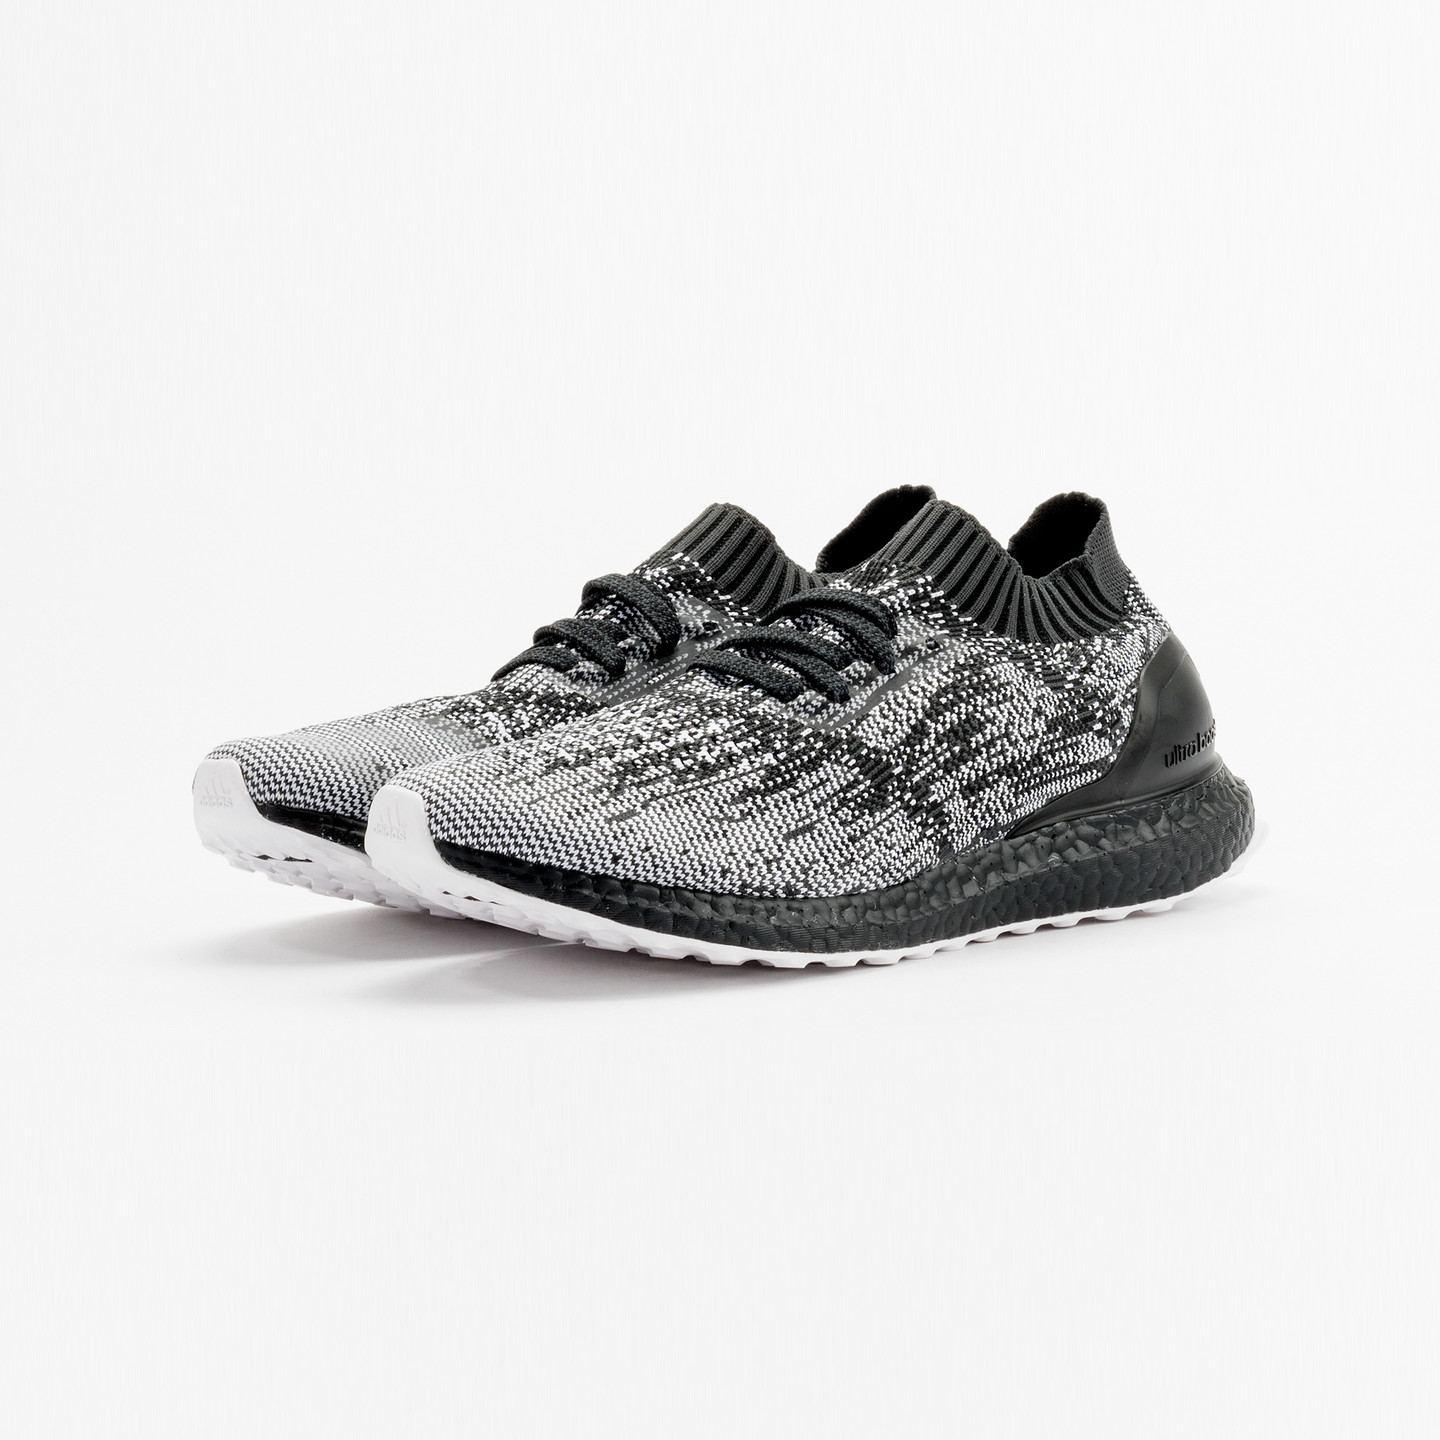 Adidas Ultra Boost Uncaged Core Black / Ftwr White S80698